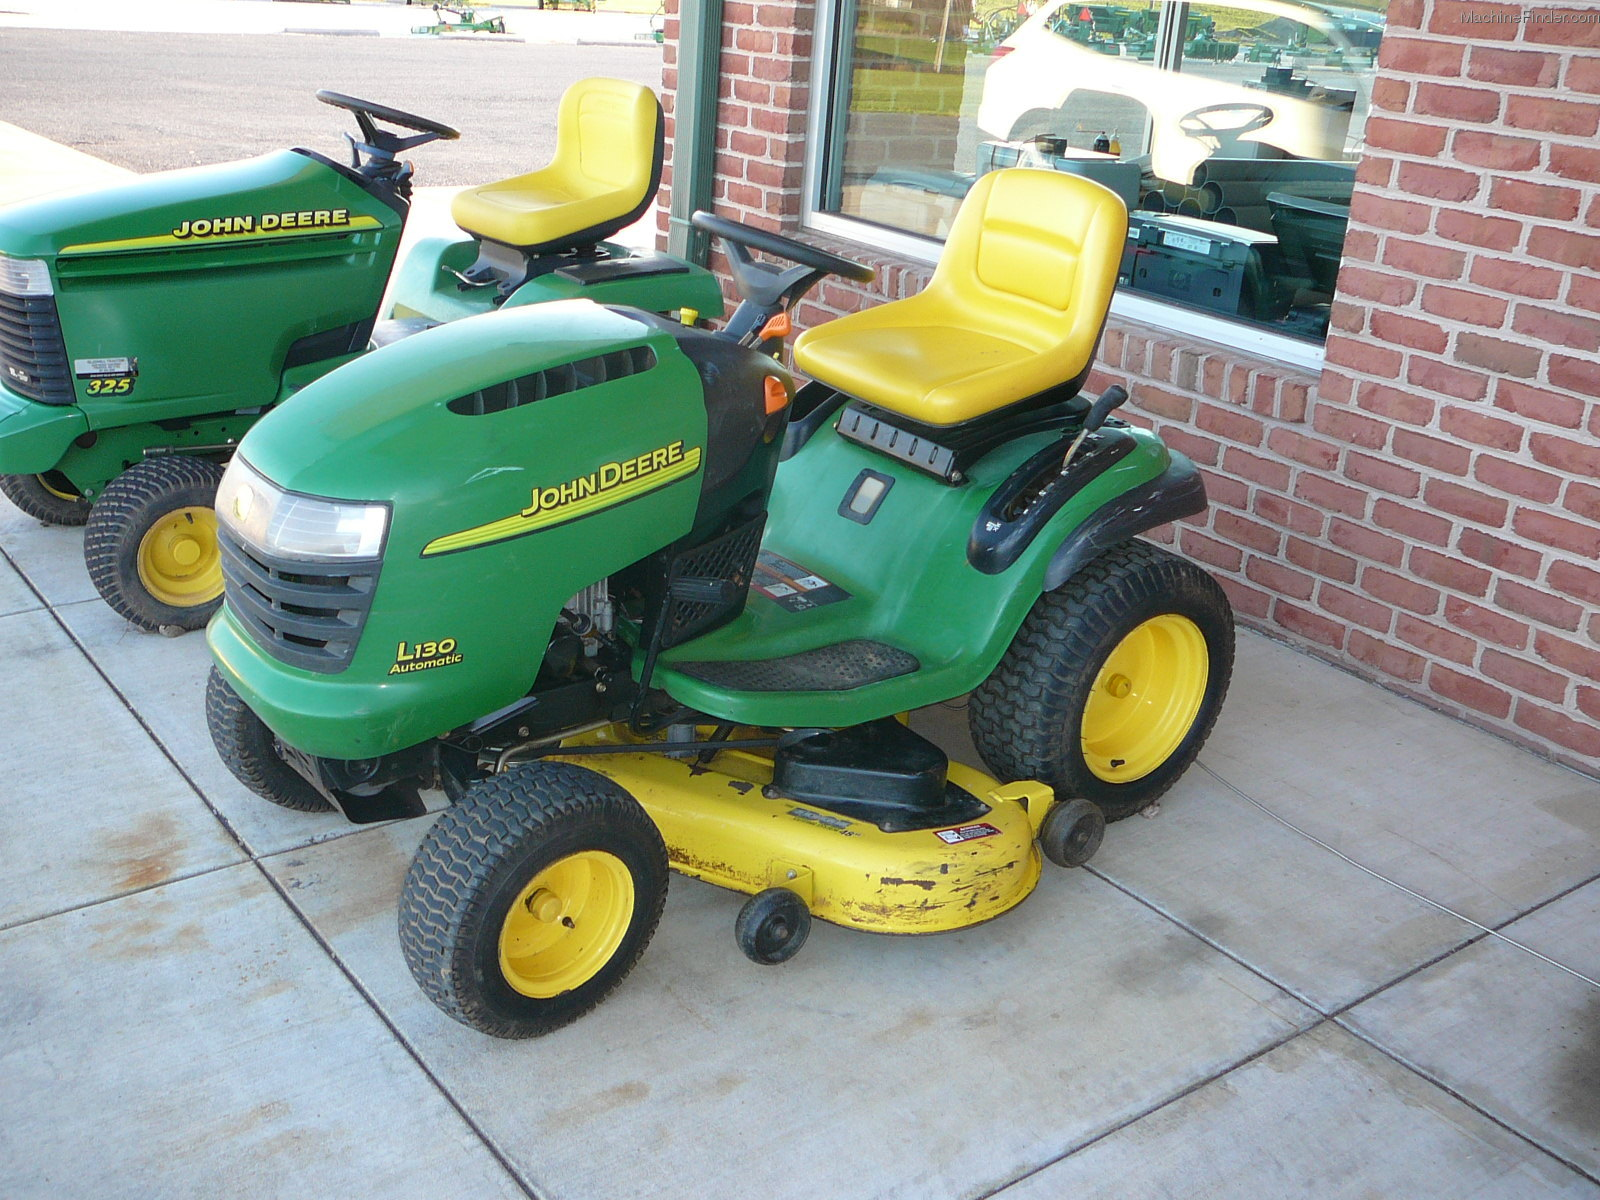 John Deere L130 Lawn Tractor 100 Series Tractors G110 Wiring Diagram Need Schematic For L120